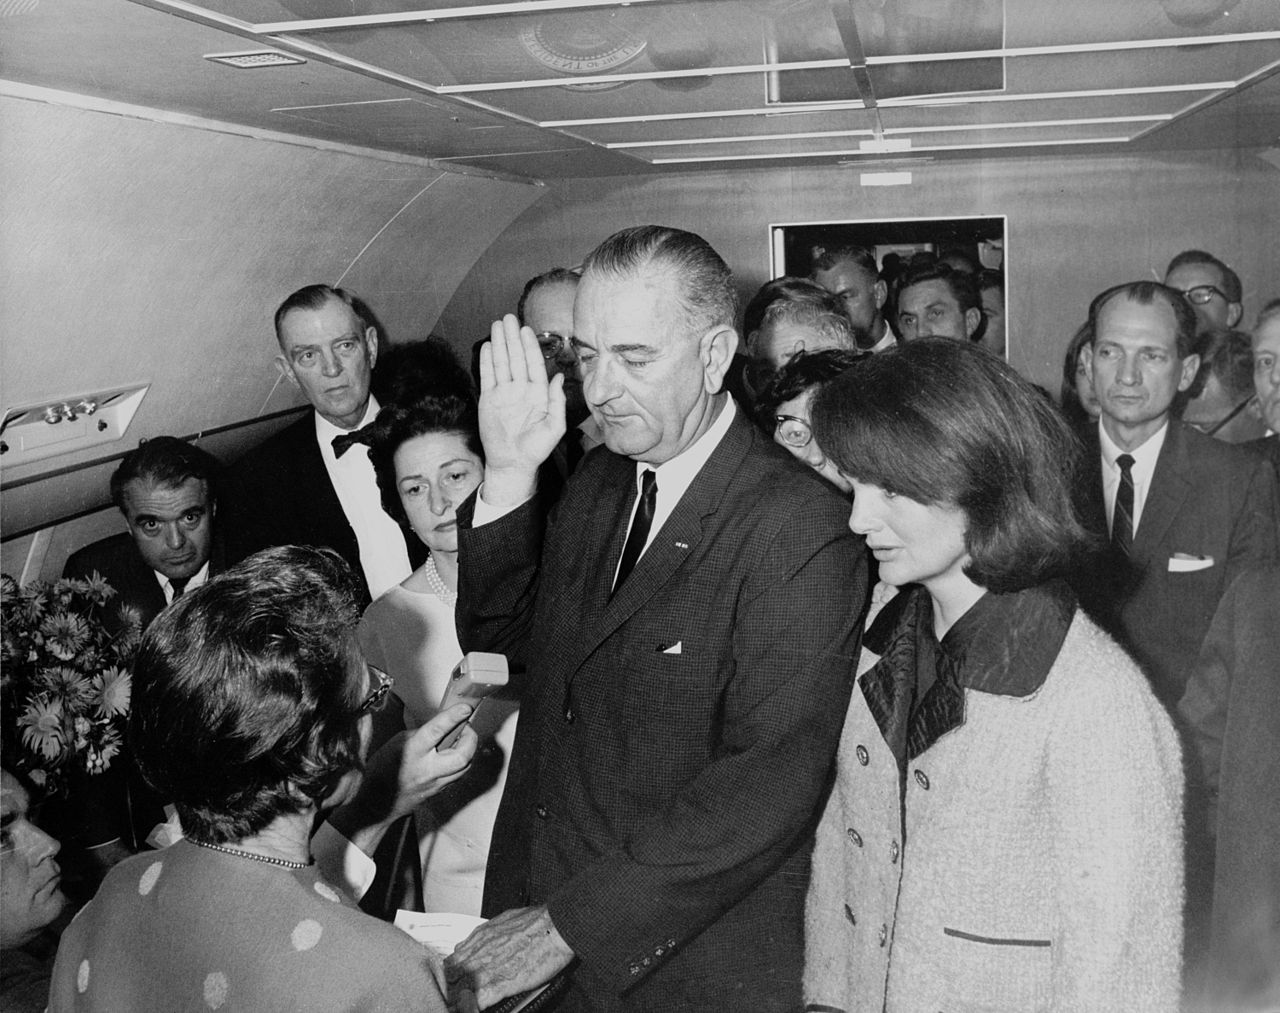 1280px-Lyndon_B._Johnson_taking_the_oath_of_office,_November_1963